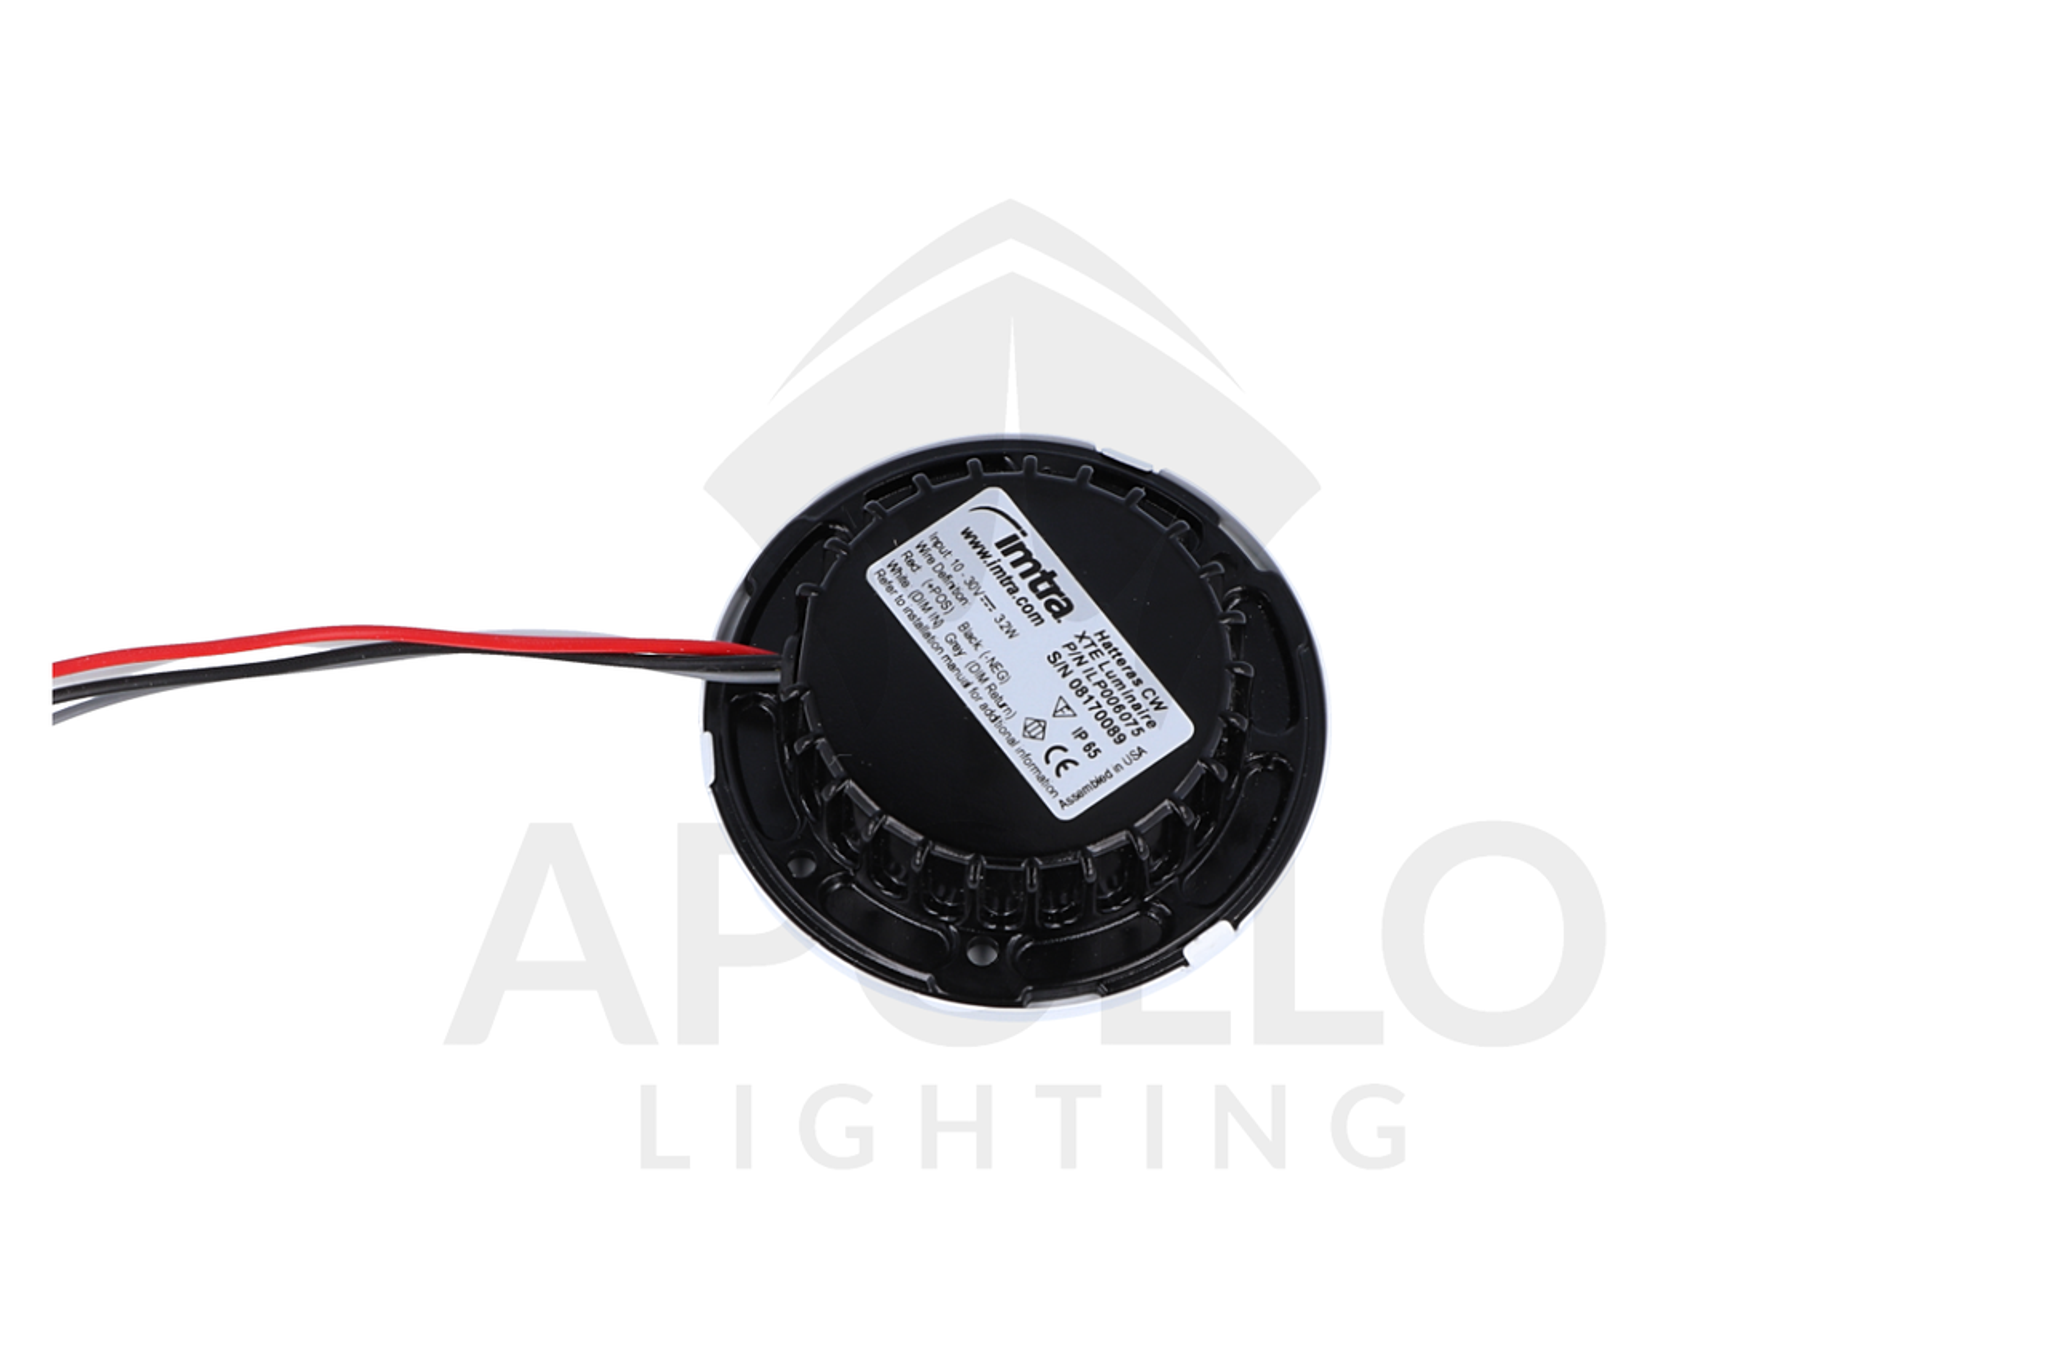 Imtra Hatteras 4 Wire Led Downlight Wiring Diagram View